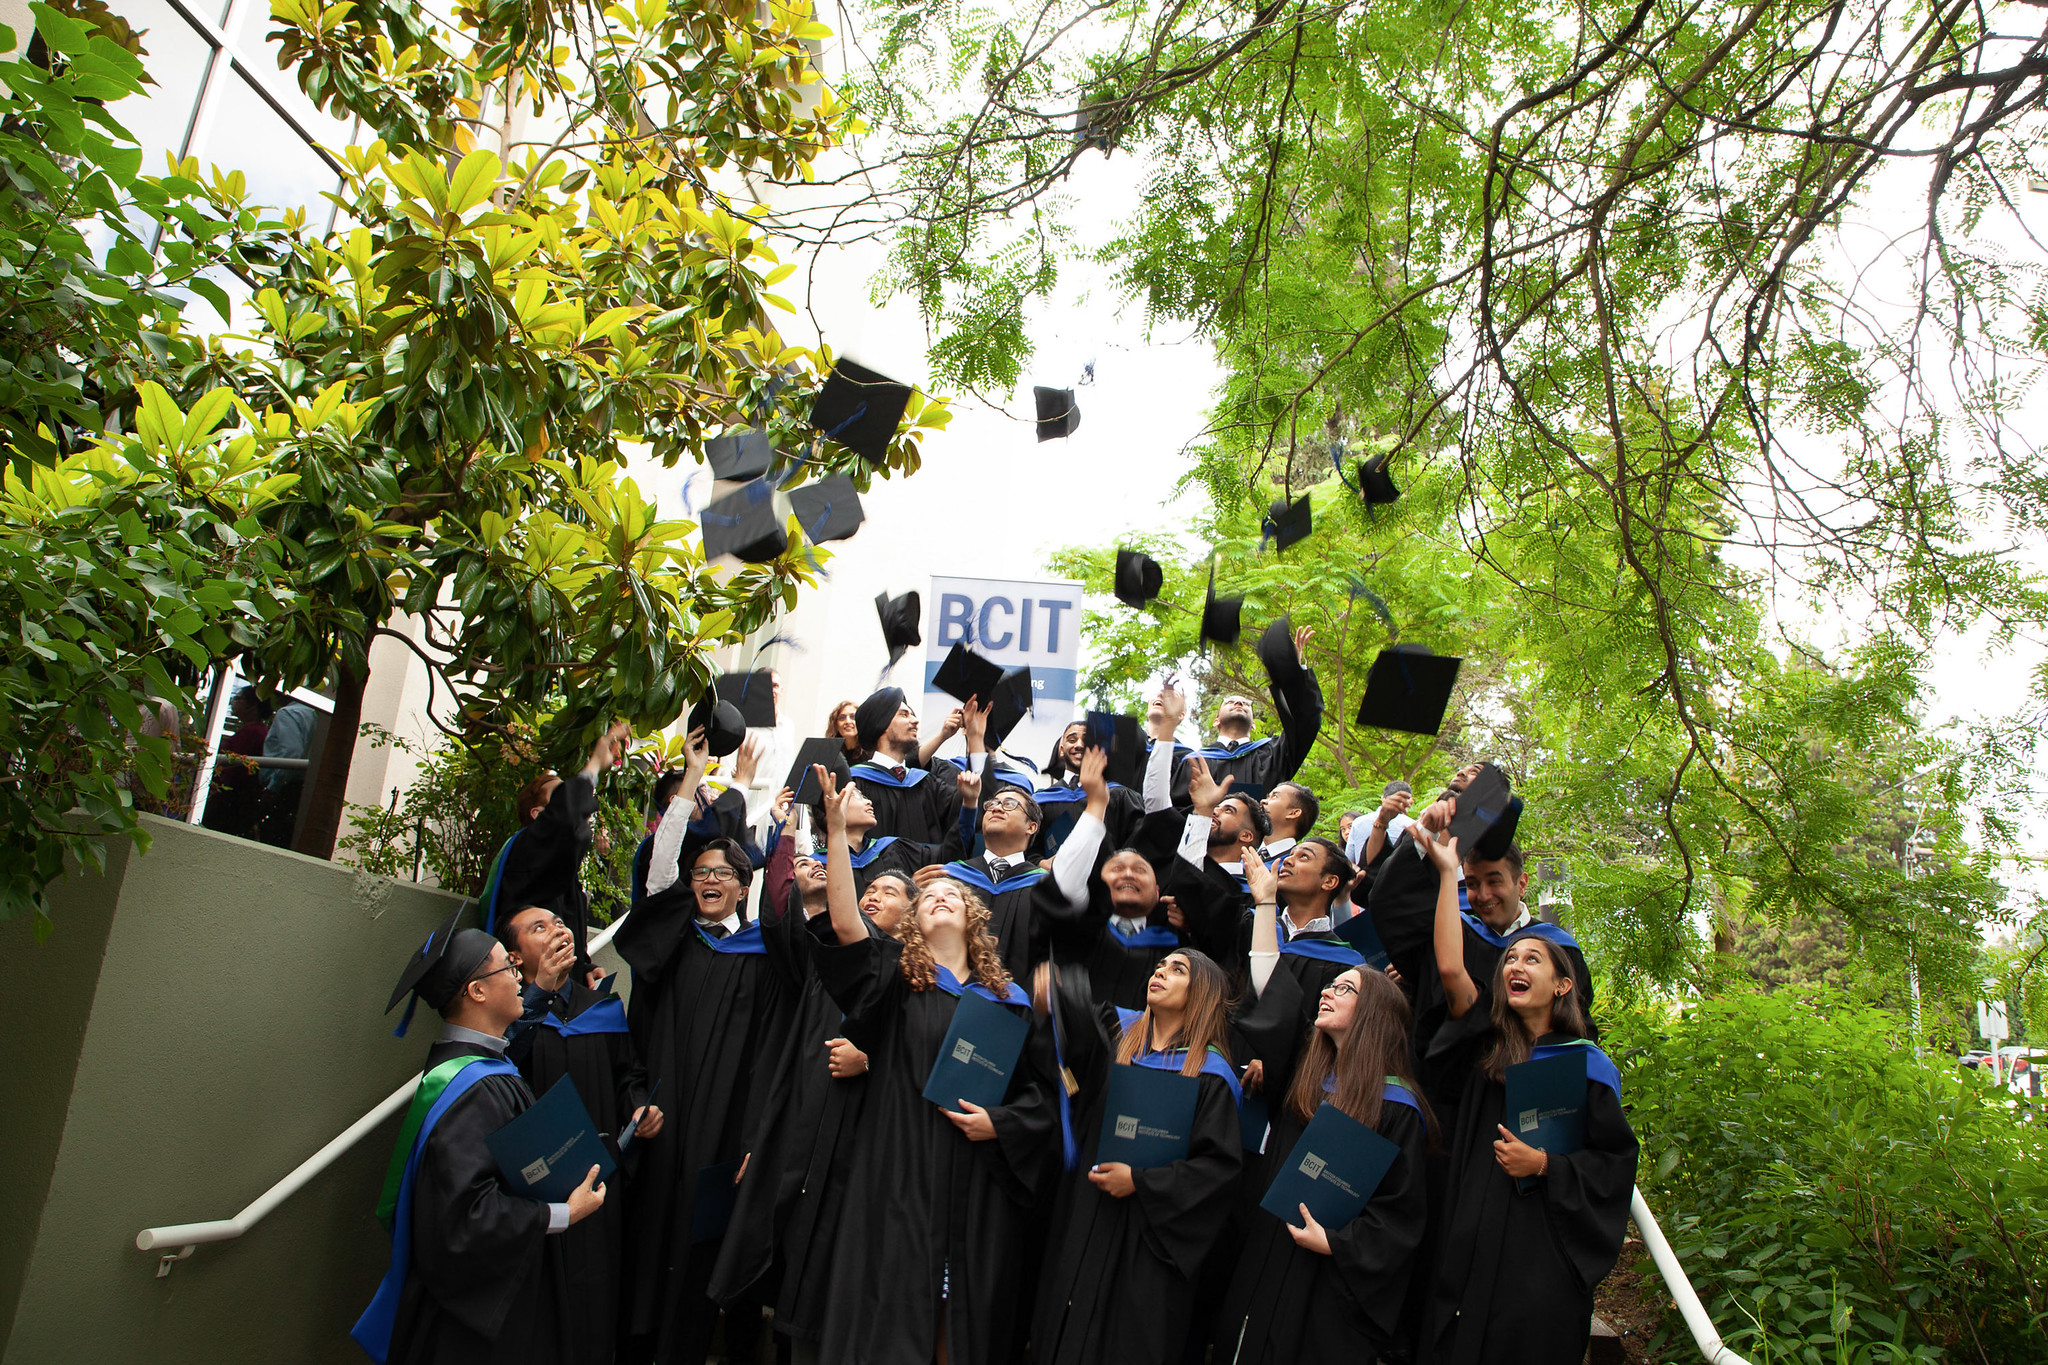 BCIT June 2019 Convocation